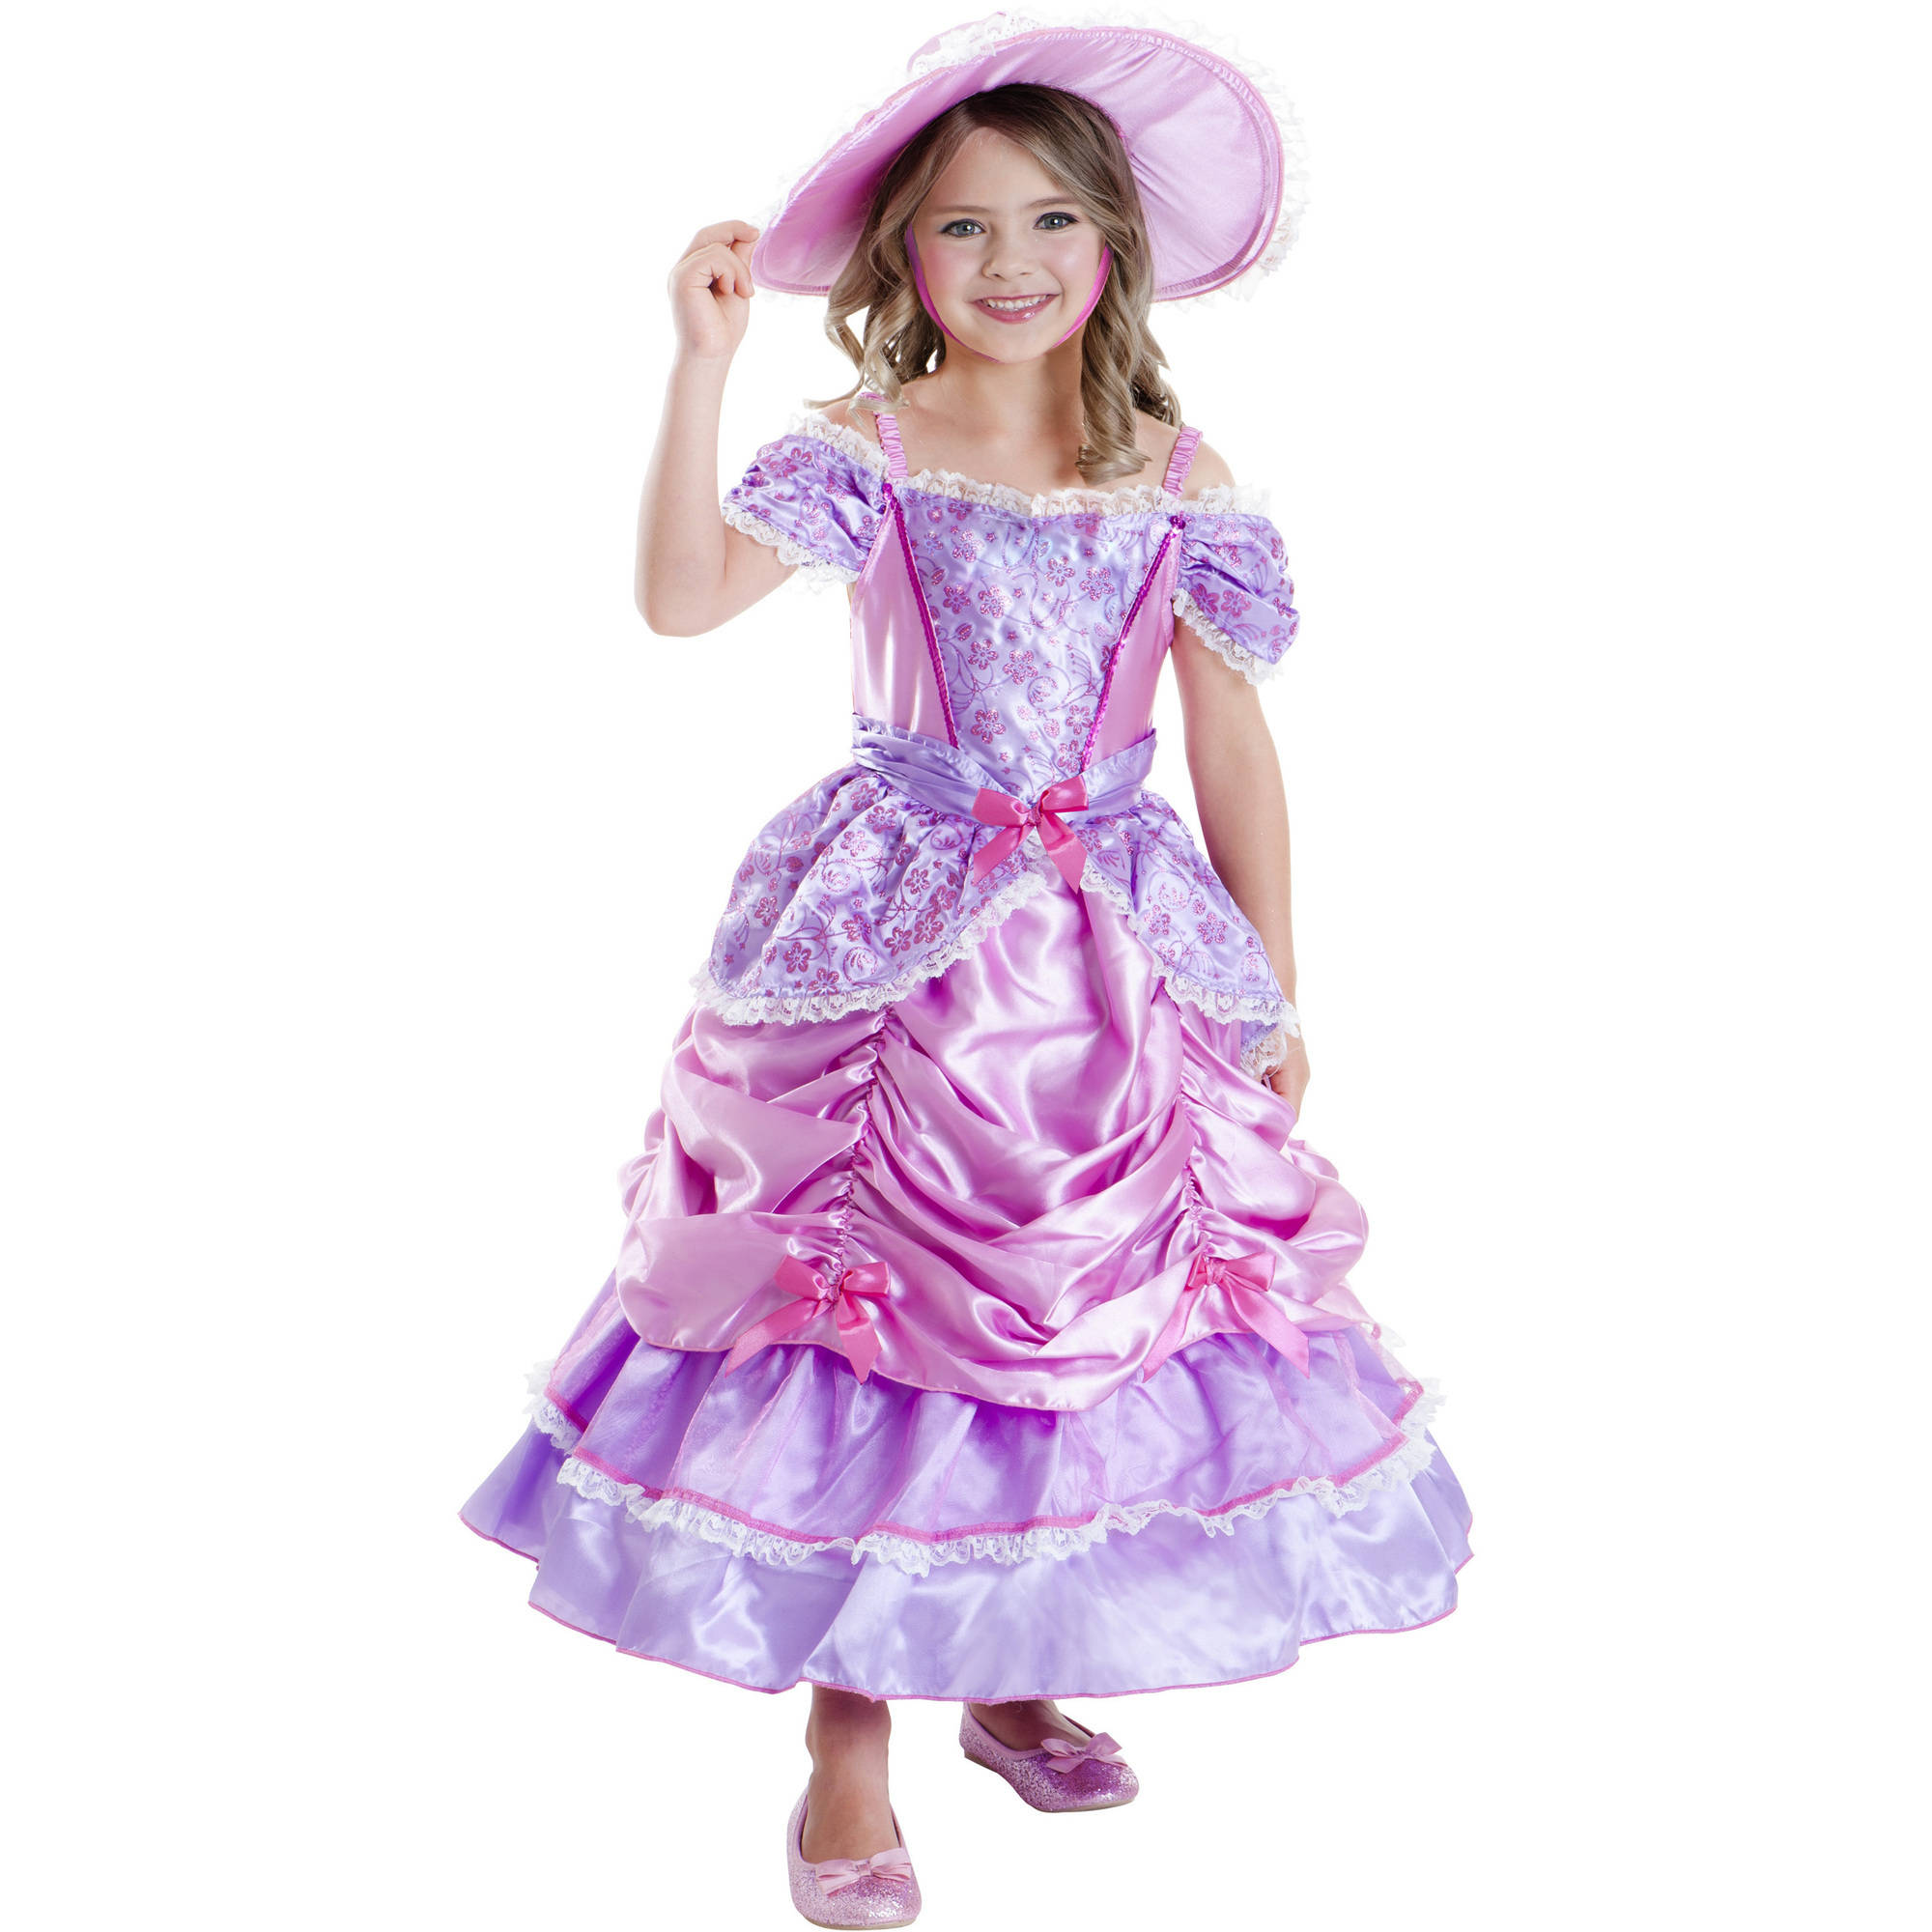 Southern Belle Child Halloween Costume  sc 1 st  Walmart & Southern Belle Child Halloween Costume - Walmart.com